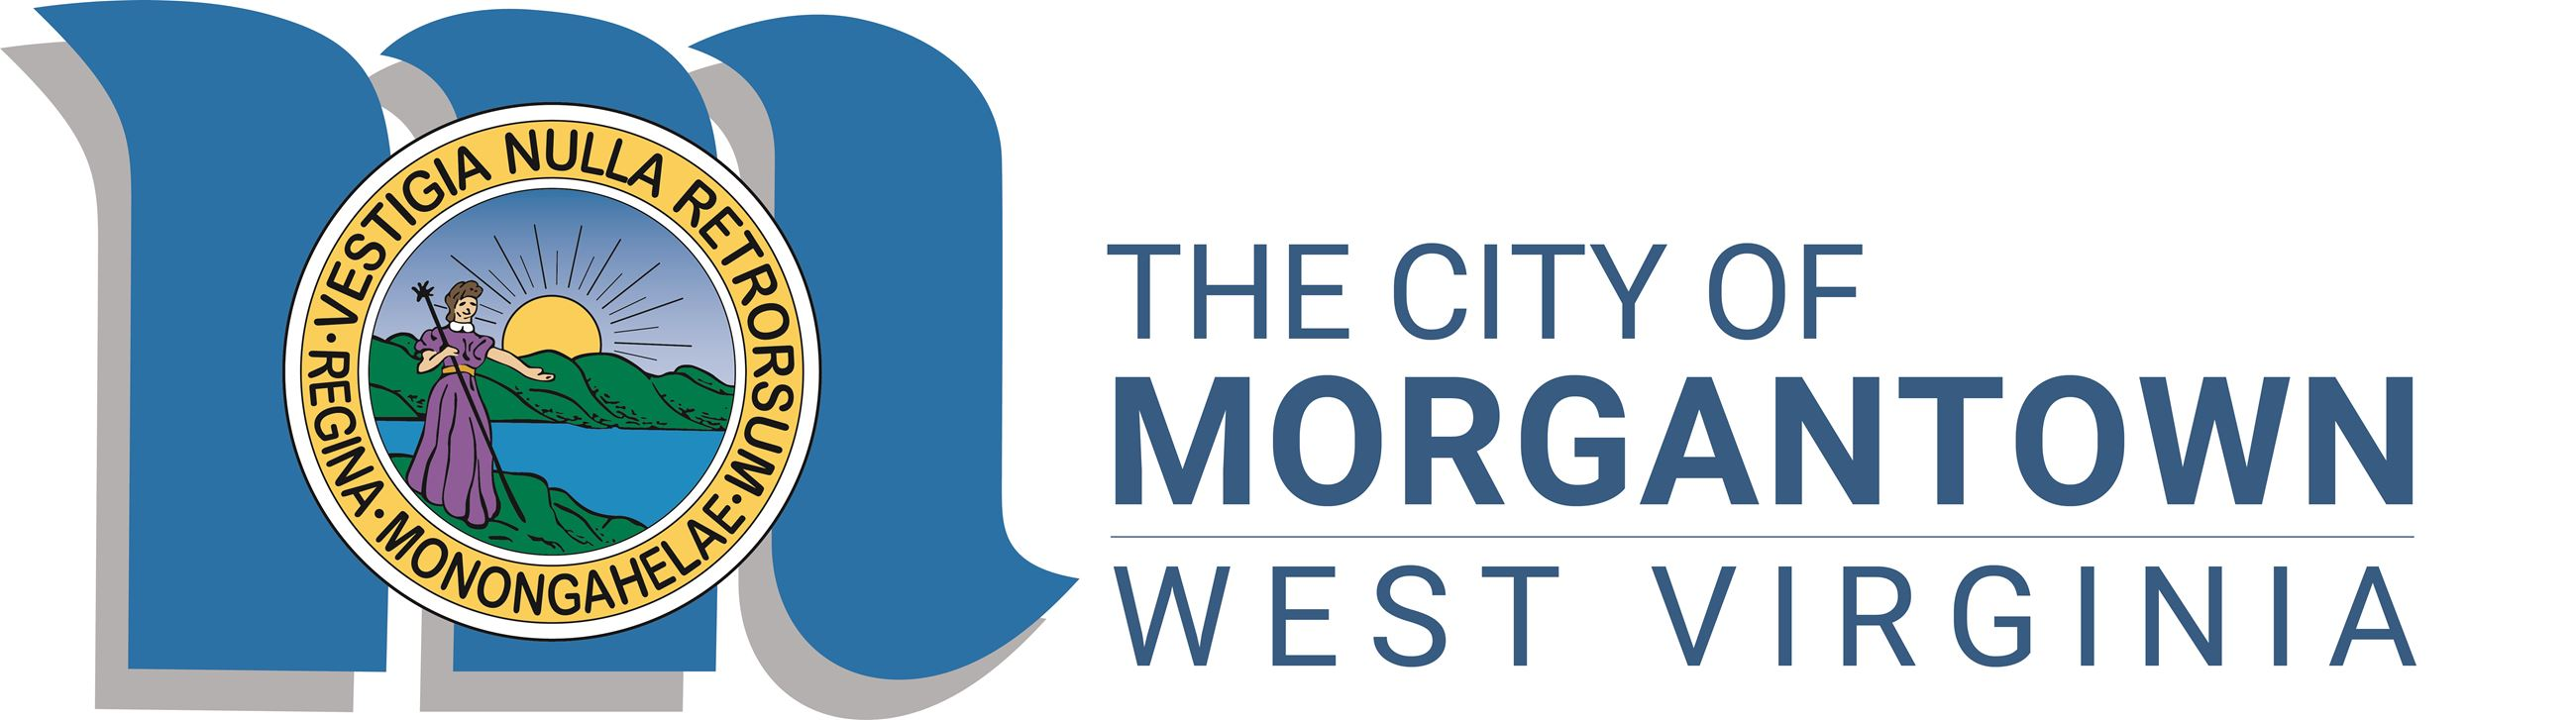 MORGANTOWN signature logo vector image